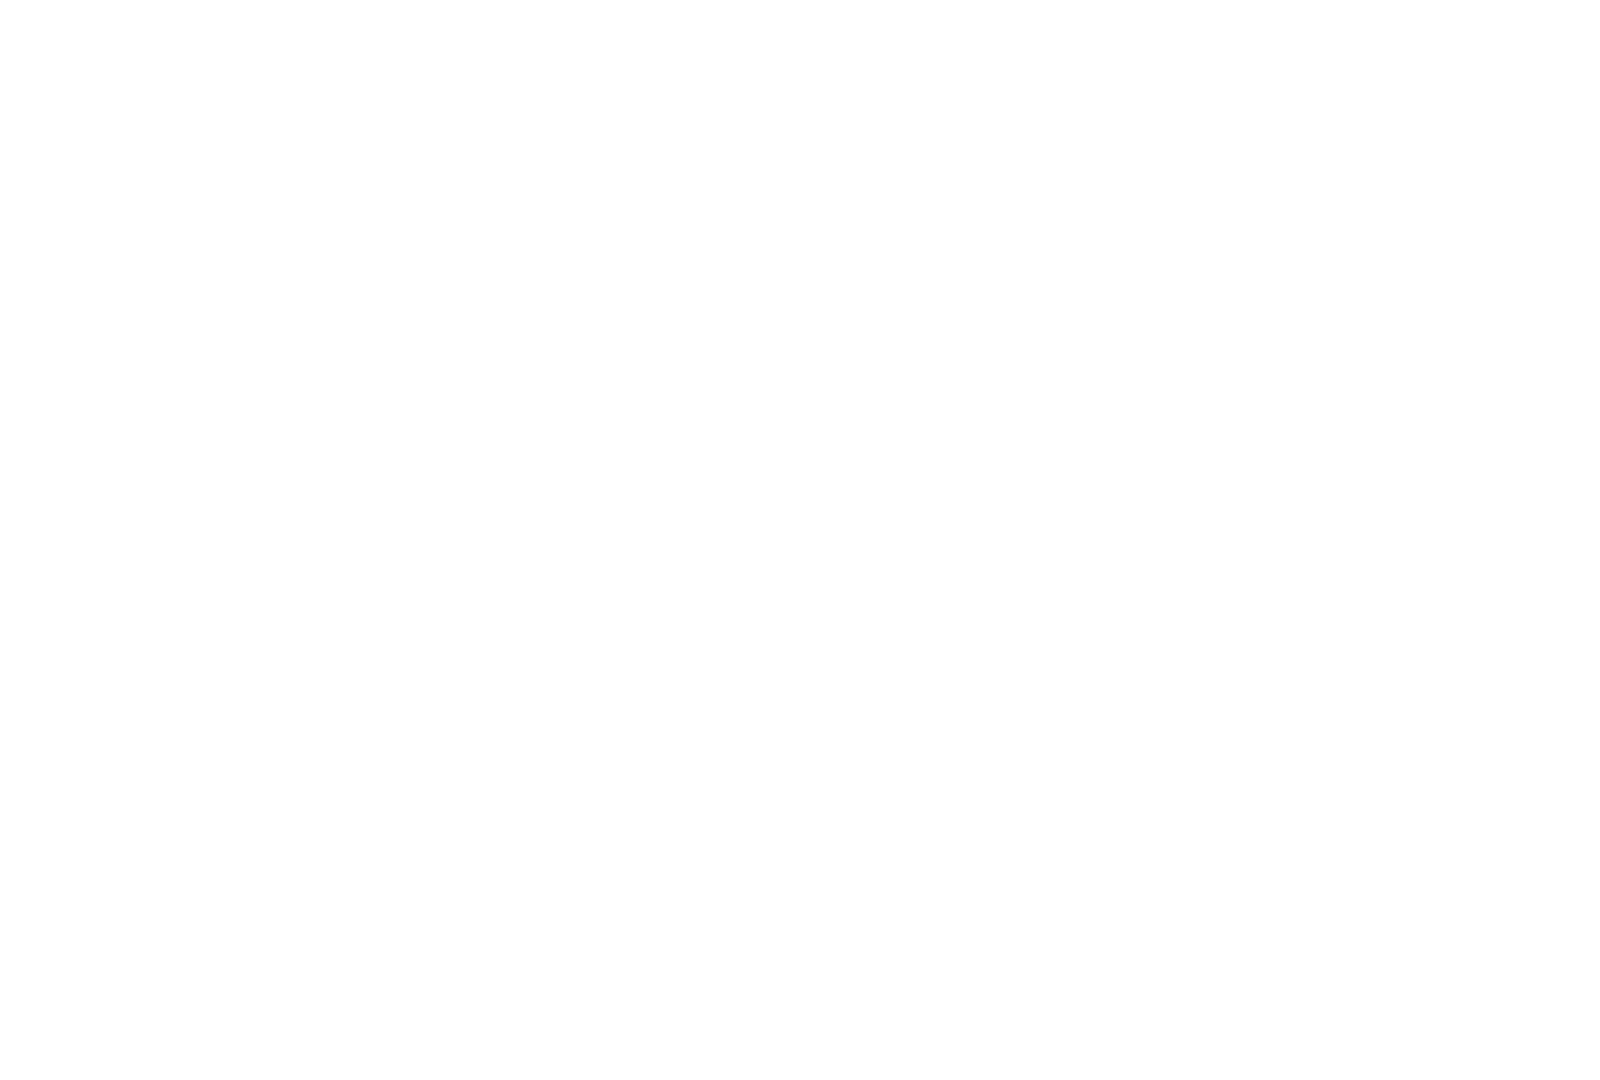 Talent Point.